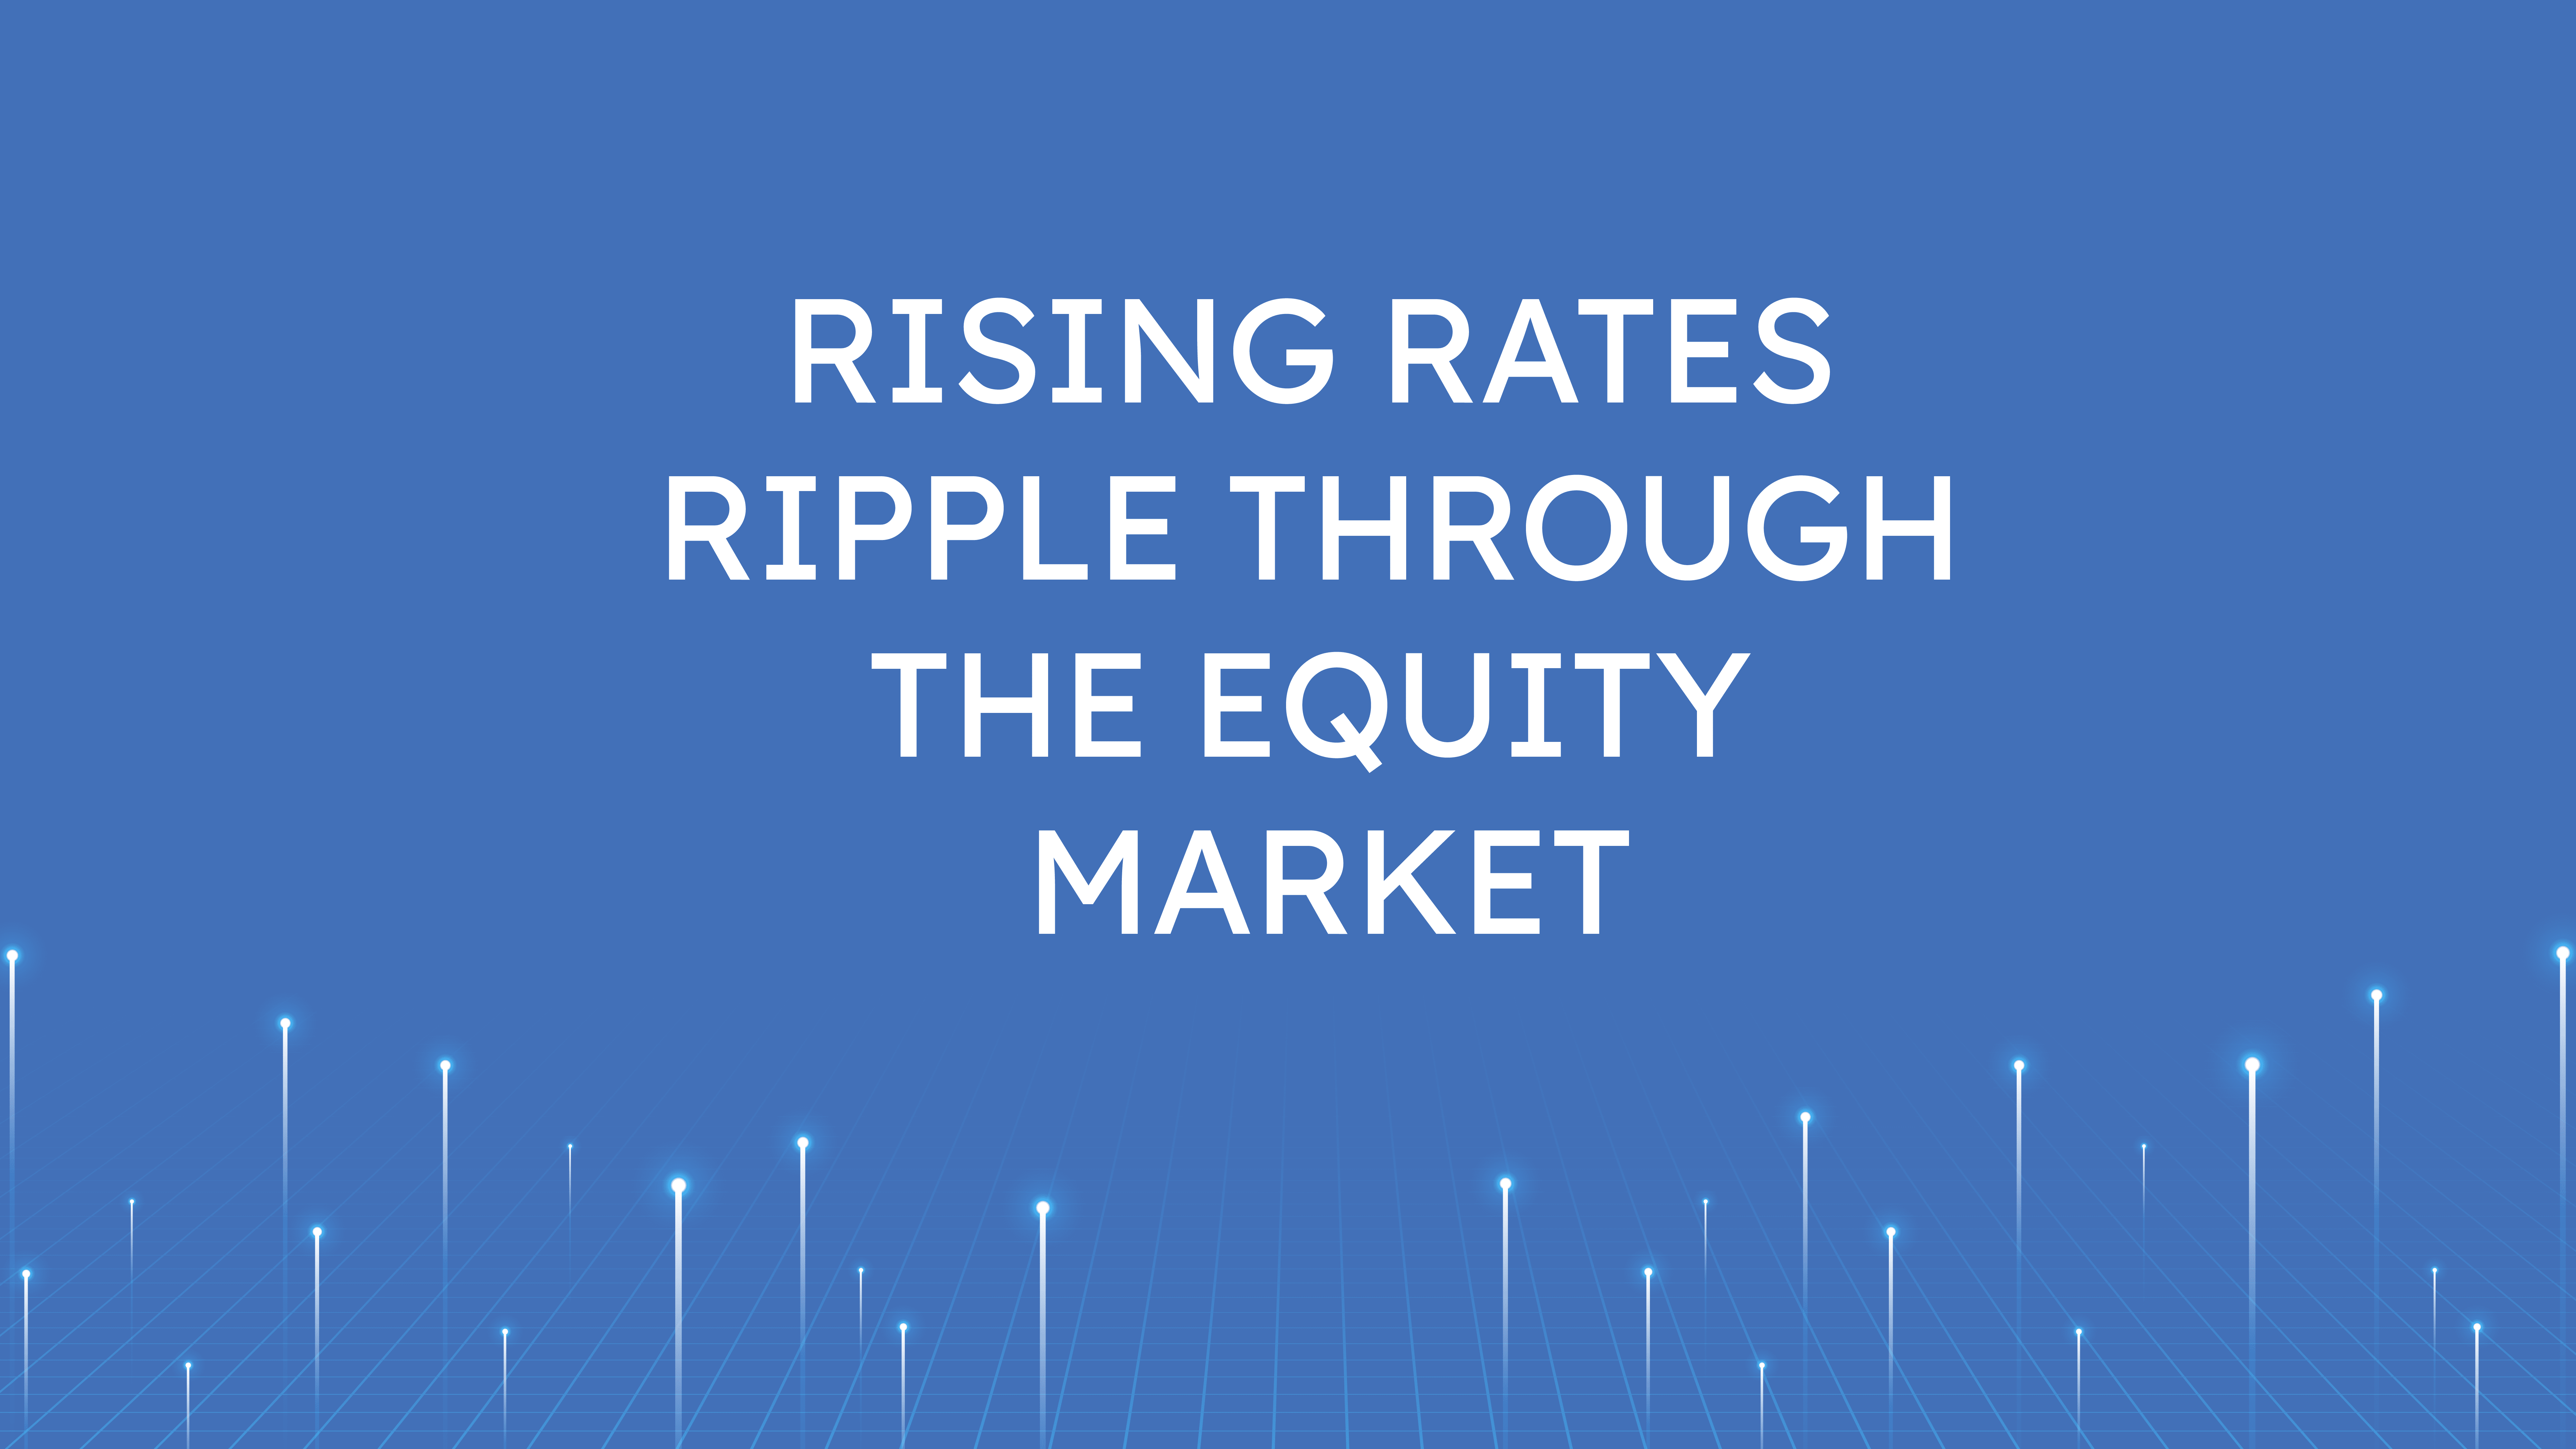 Rising Rates Ripple  Through the Equity Market